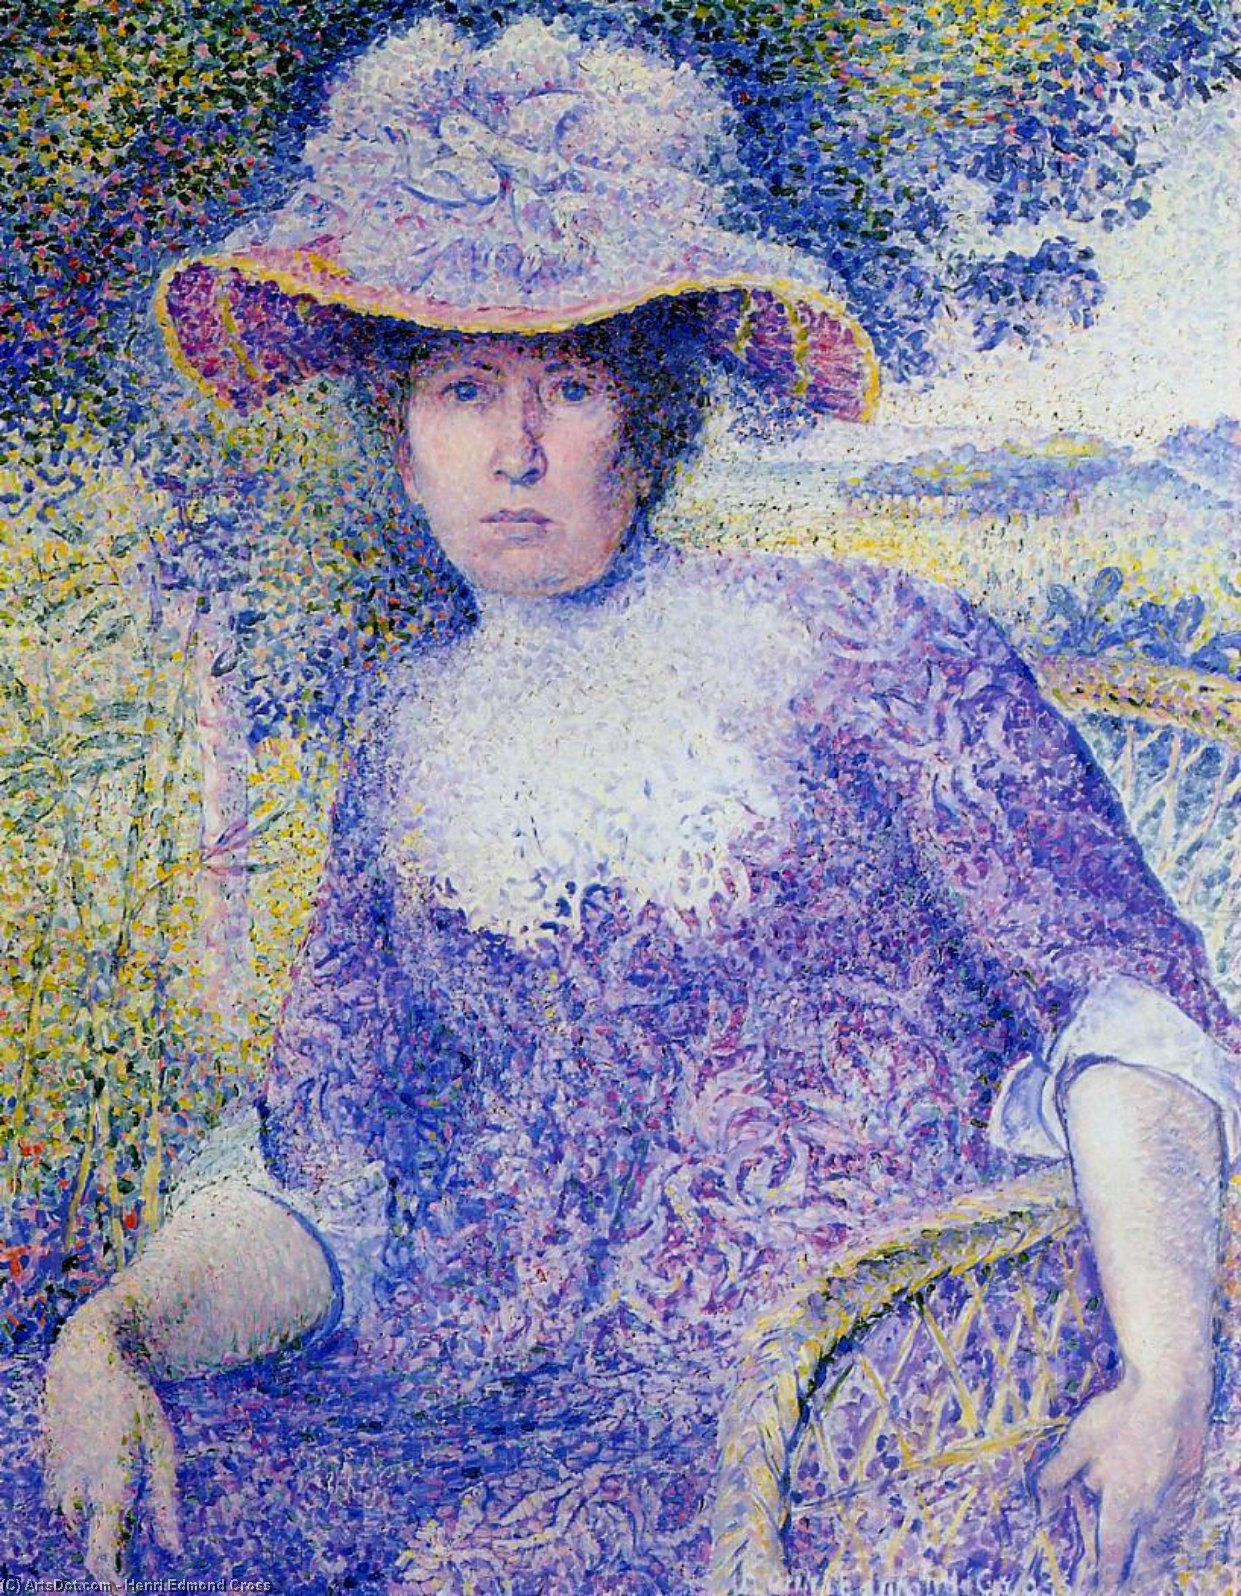 肖像夫人十字, 油画 通过 Henri Edmond Cross (1856-1910, France)